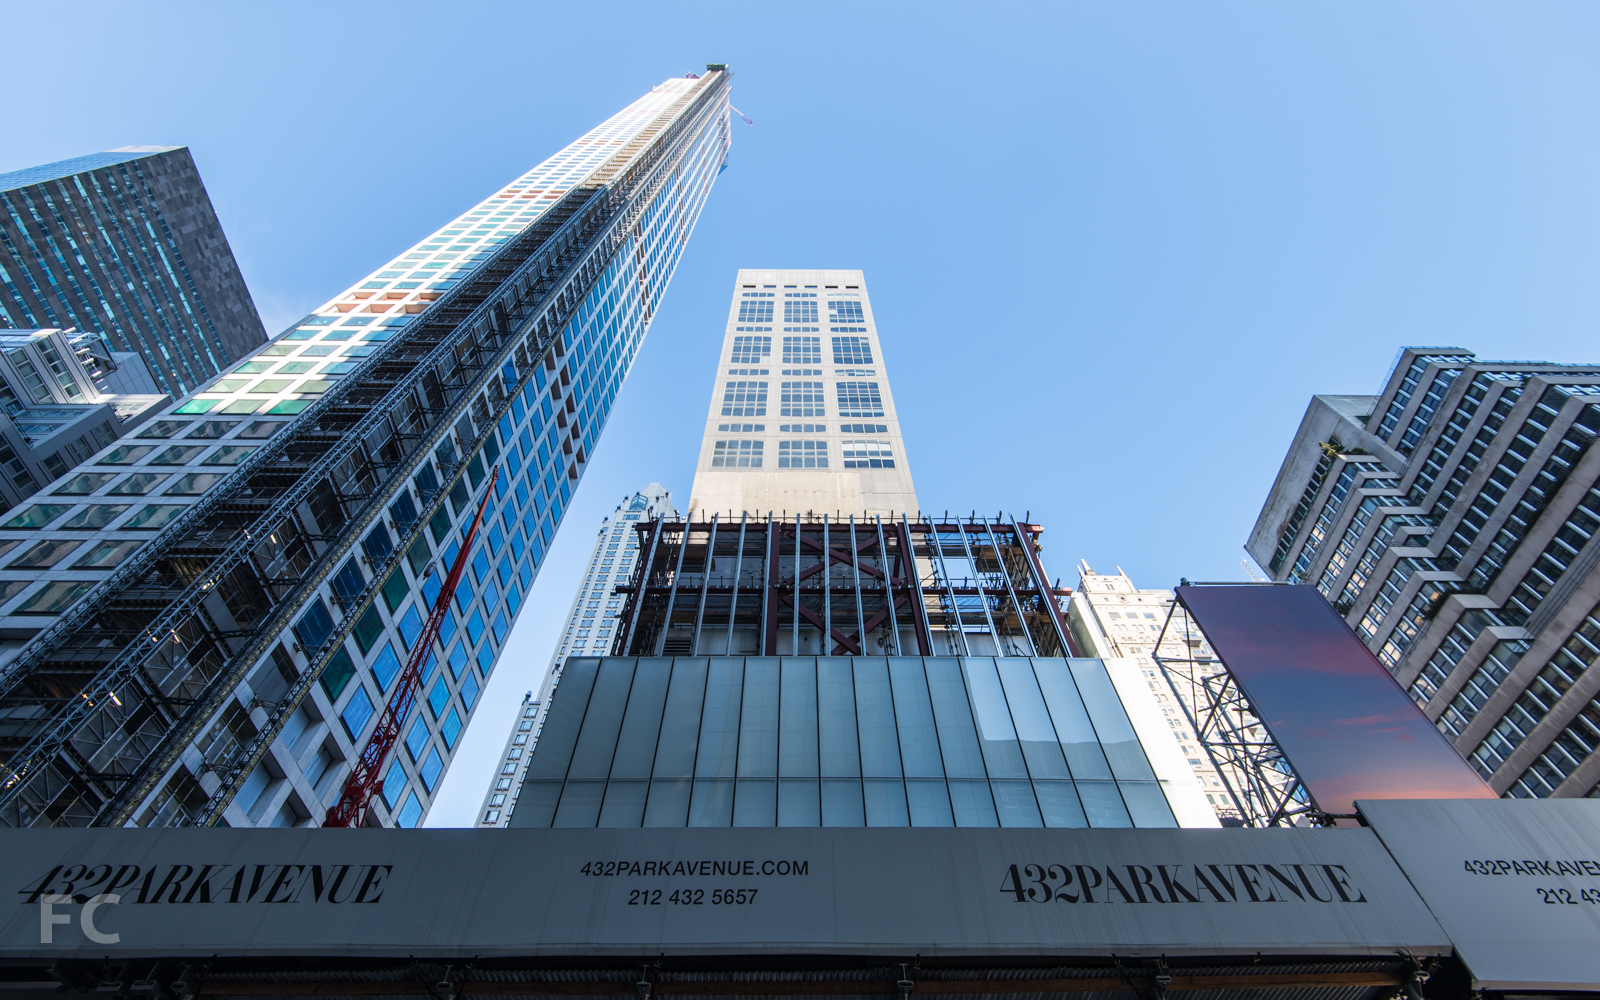 South facade from East 56th Street.